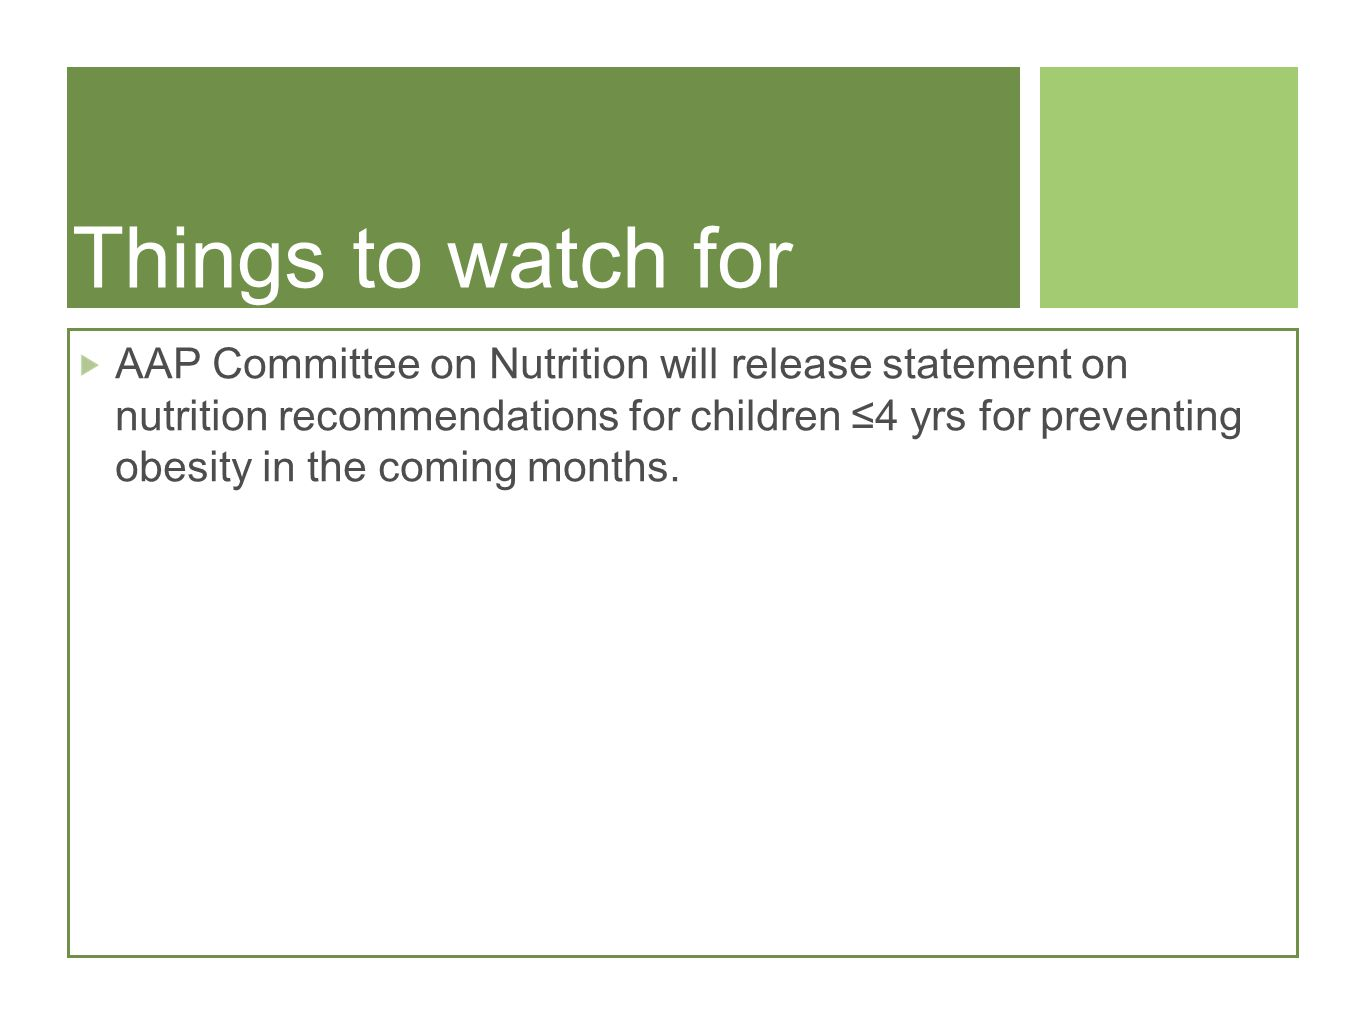 Things to watch for AAP Committee on Nutrition will release statement on nutrition recommendations for children 4 yrs for preventing obesity in the coming months.